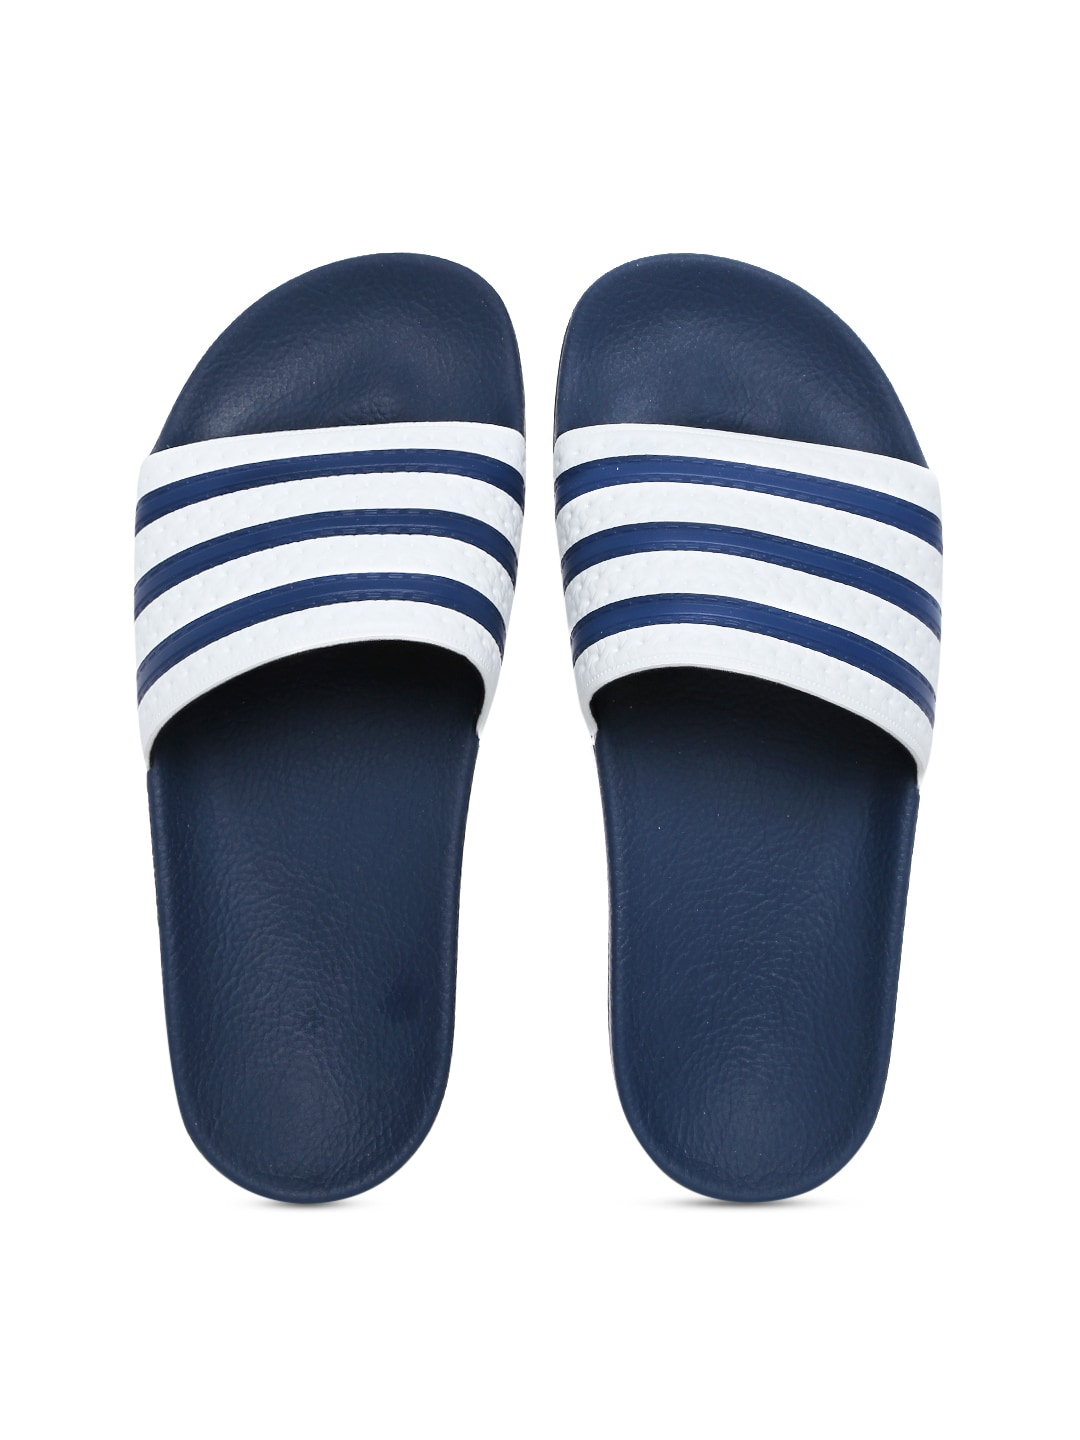 bb13dd8a2 Flip Flops for Men - Buy Slippers   Flip Flops for Men Online